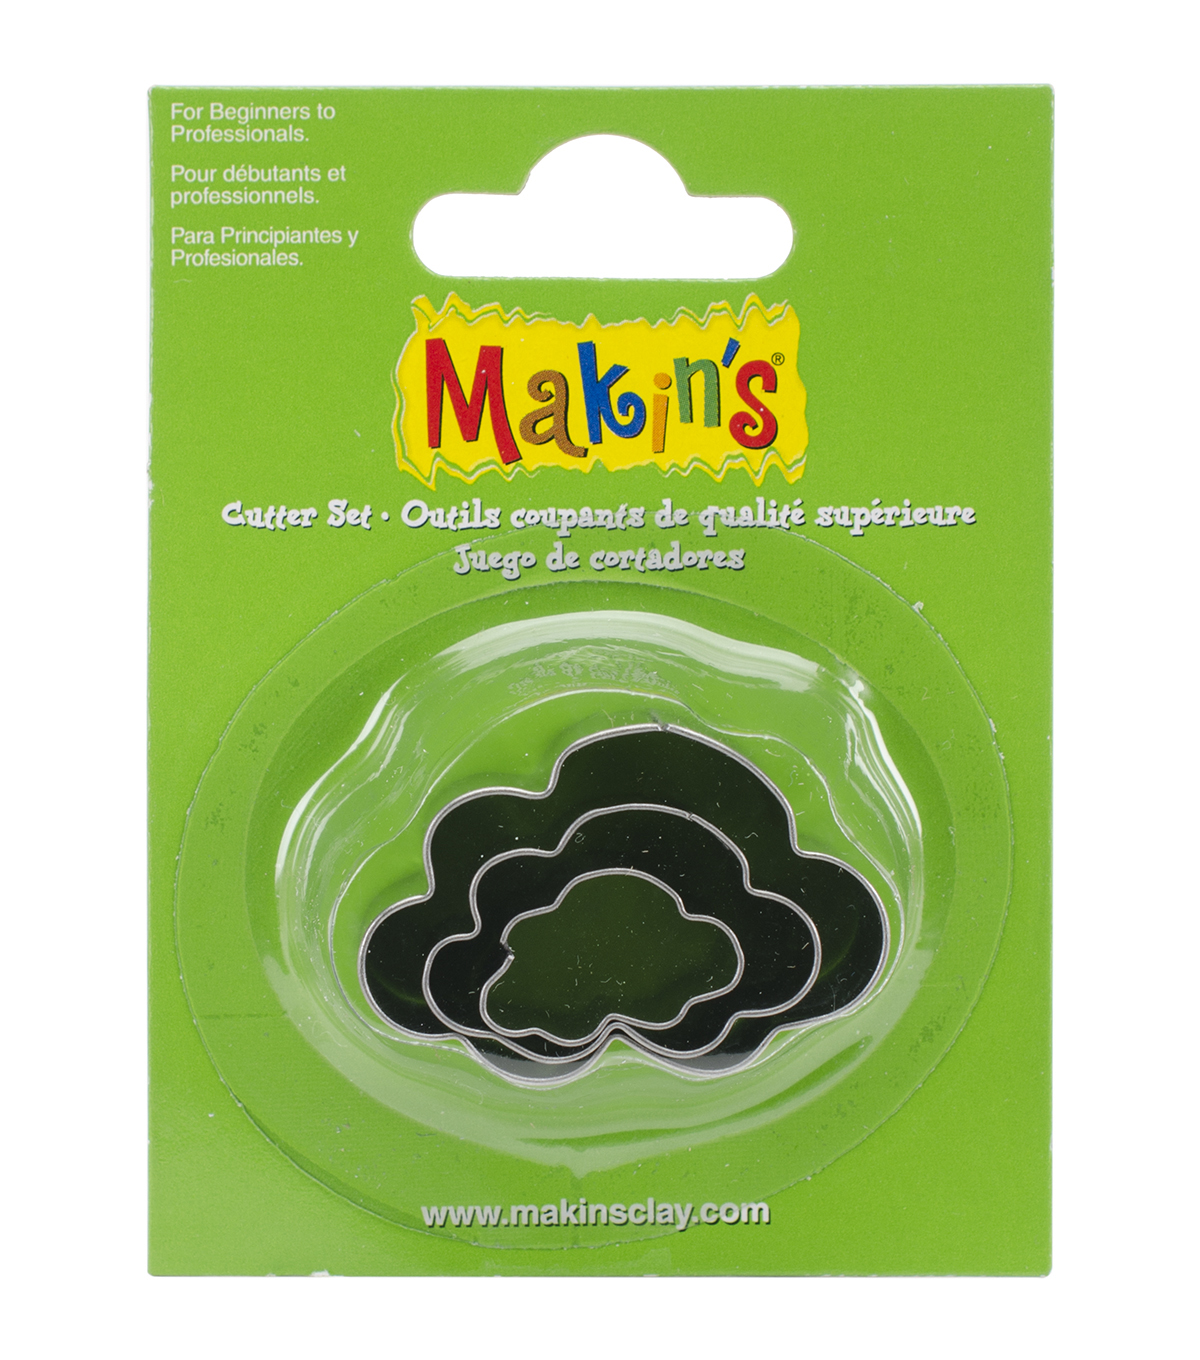 Makin's Clay Cloud Cutters